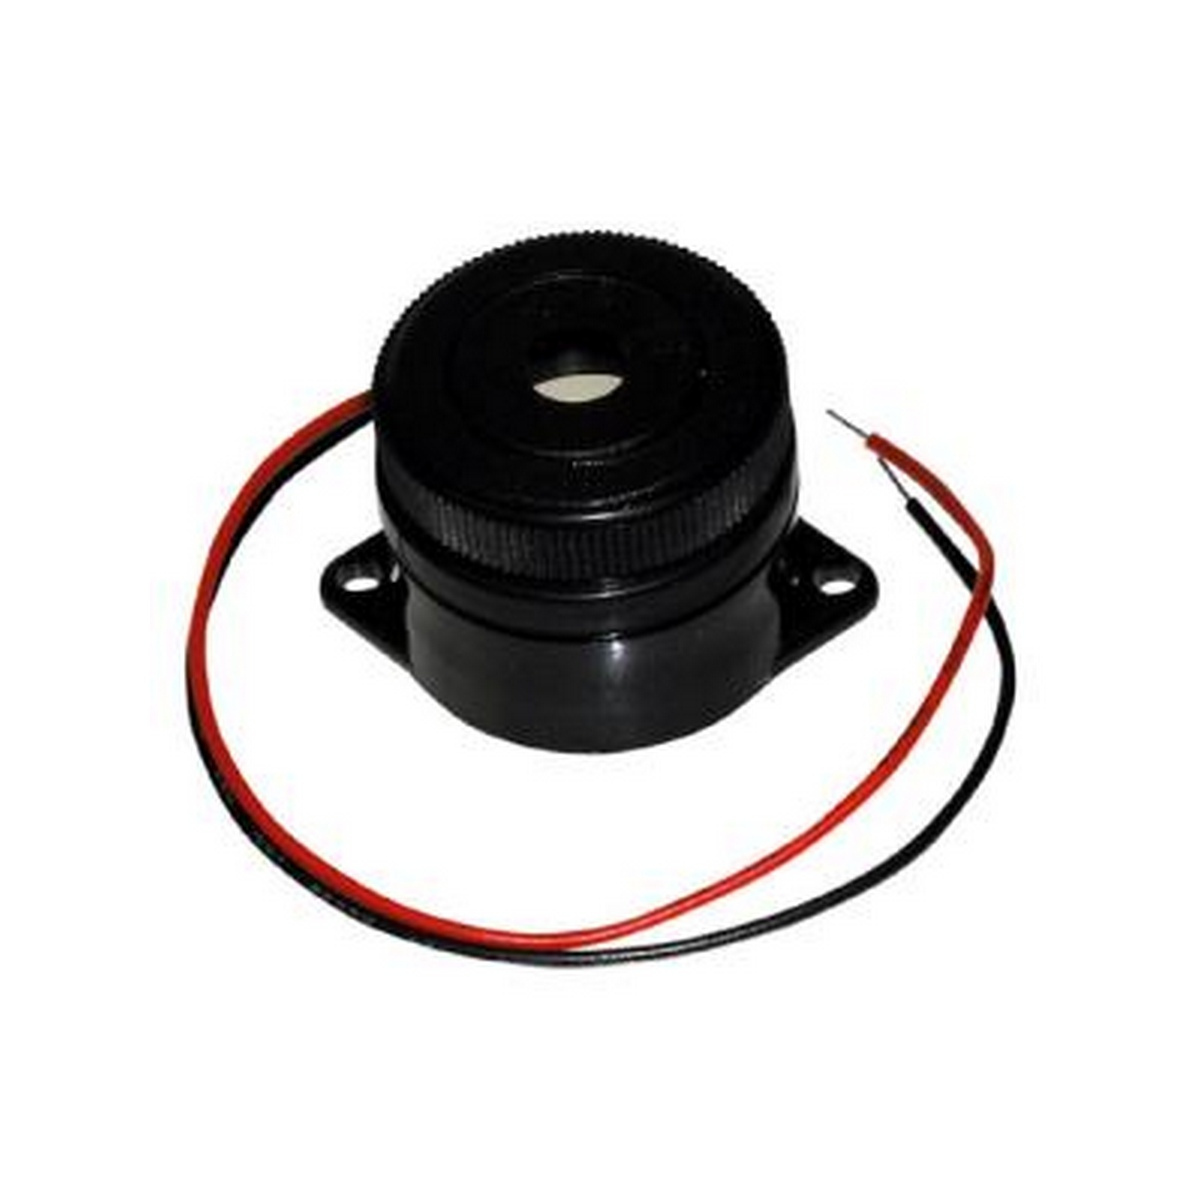 MG Electronics PA100 Piezo button 3-8vdc, 20mA